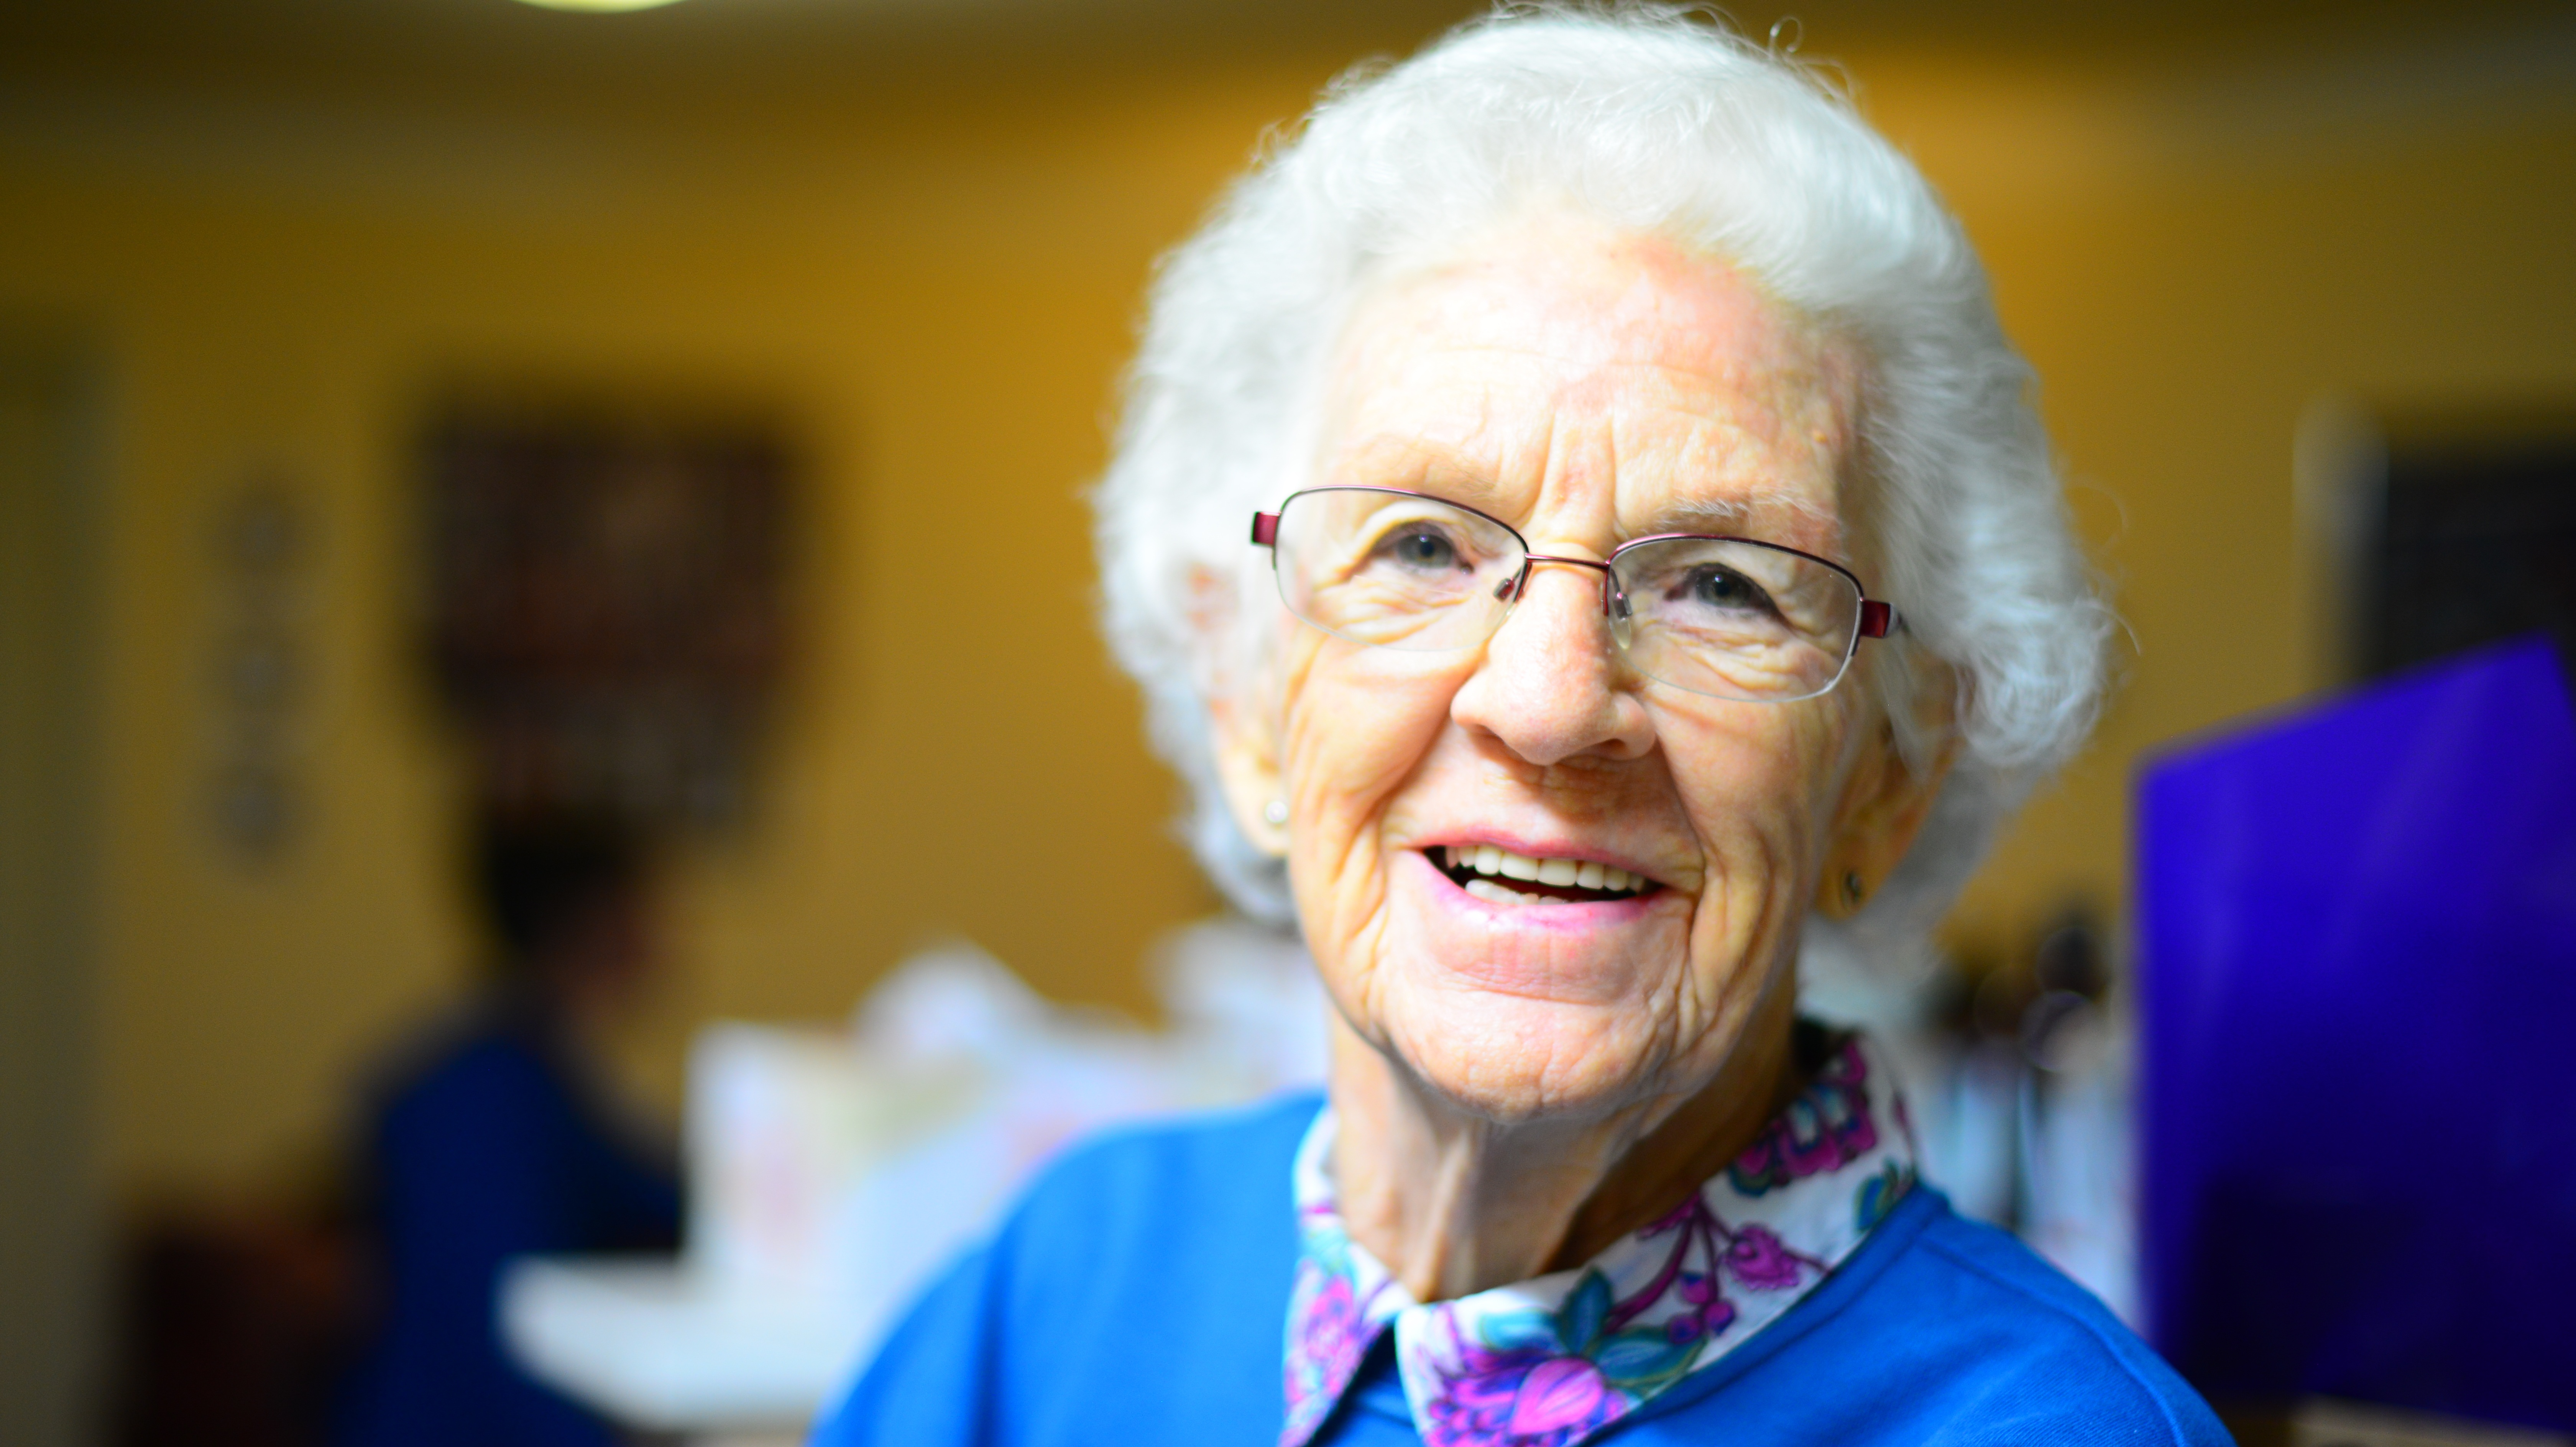 10 Easy Ways Seniors Can Boost Their Mental Health and Well-Being